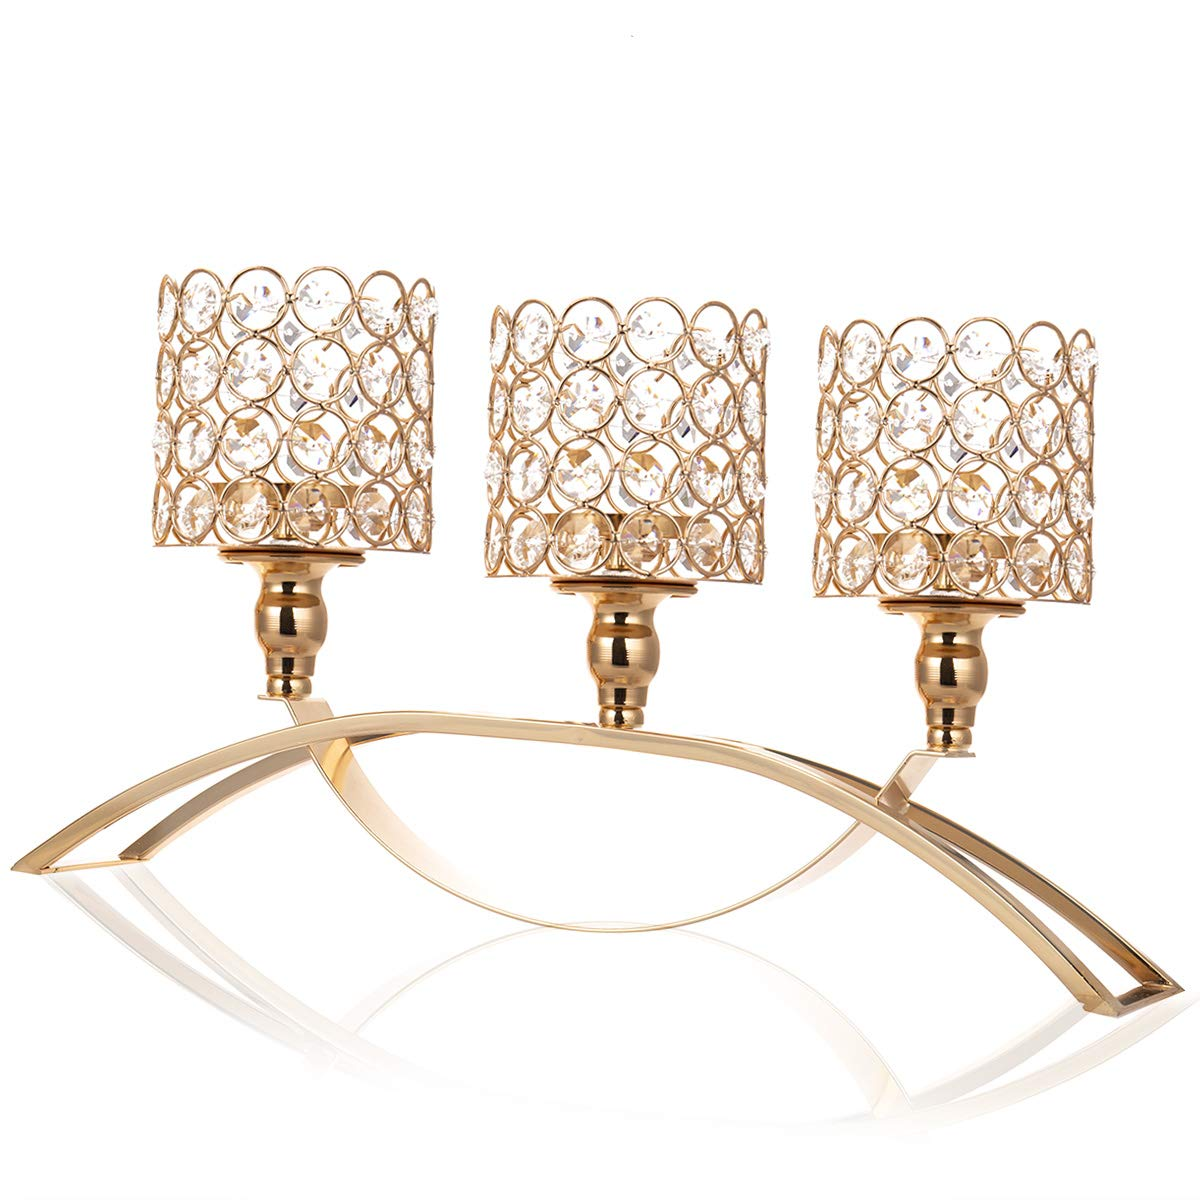 ManChDa Valentines Gift 3 Arms Crystal Gold Candle Holders Sleeve for Wedding Table Centerpieces Home Decoration Gifts for Christmas Thanksgiving (Gold)